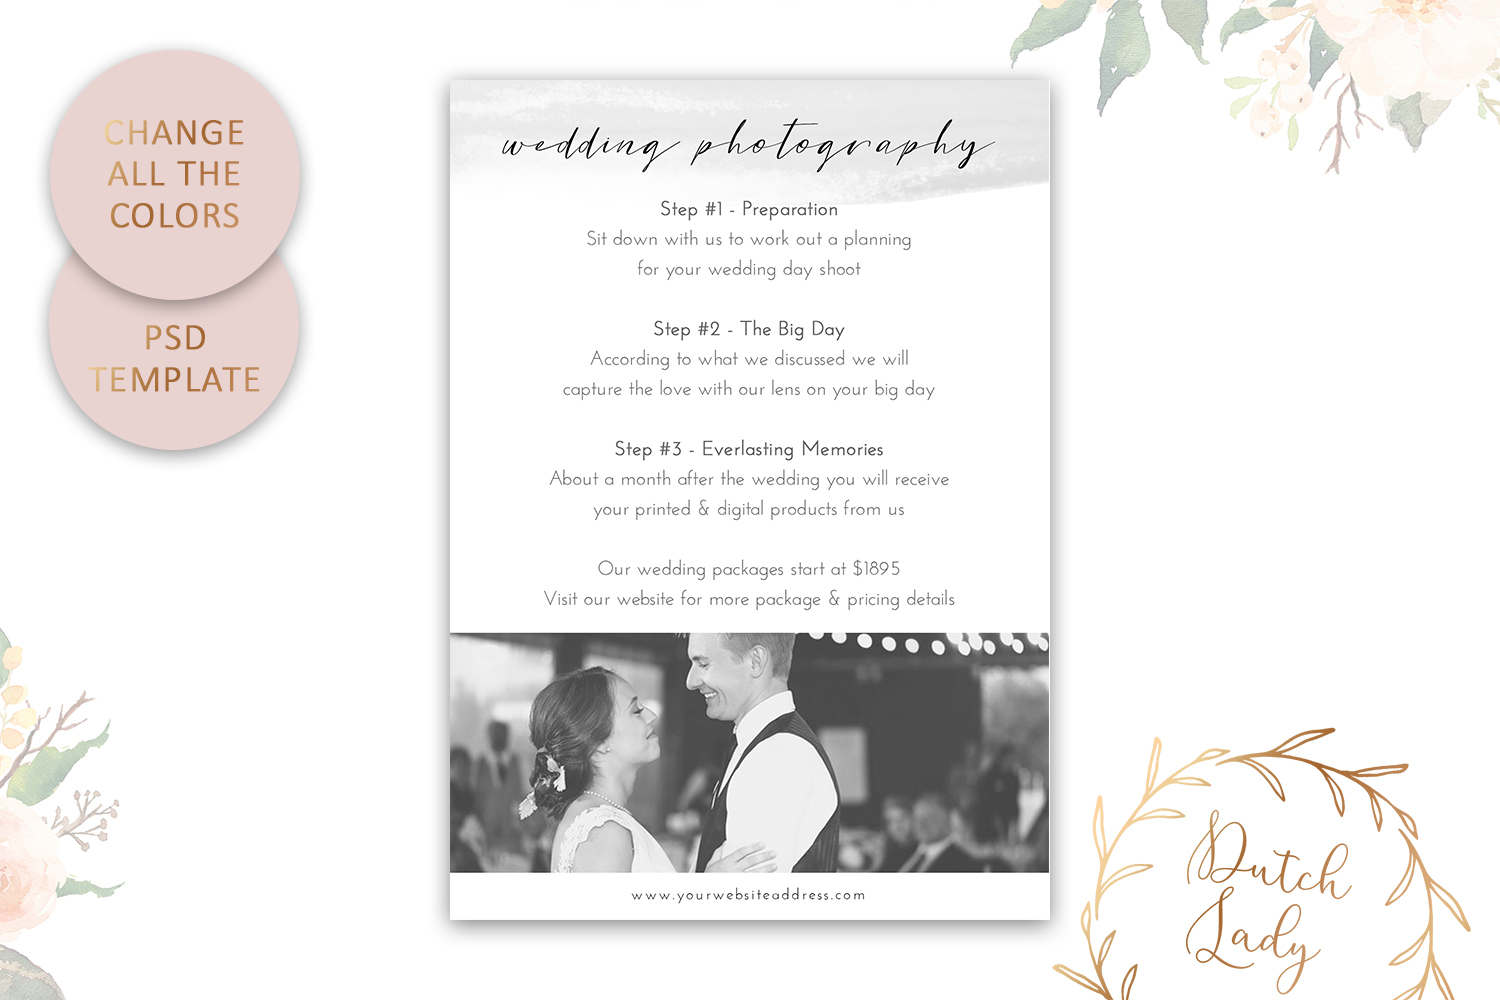 PSD Wedding Photo Session Card - Adobe Photoshop Template #9 - easily change colors and -